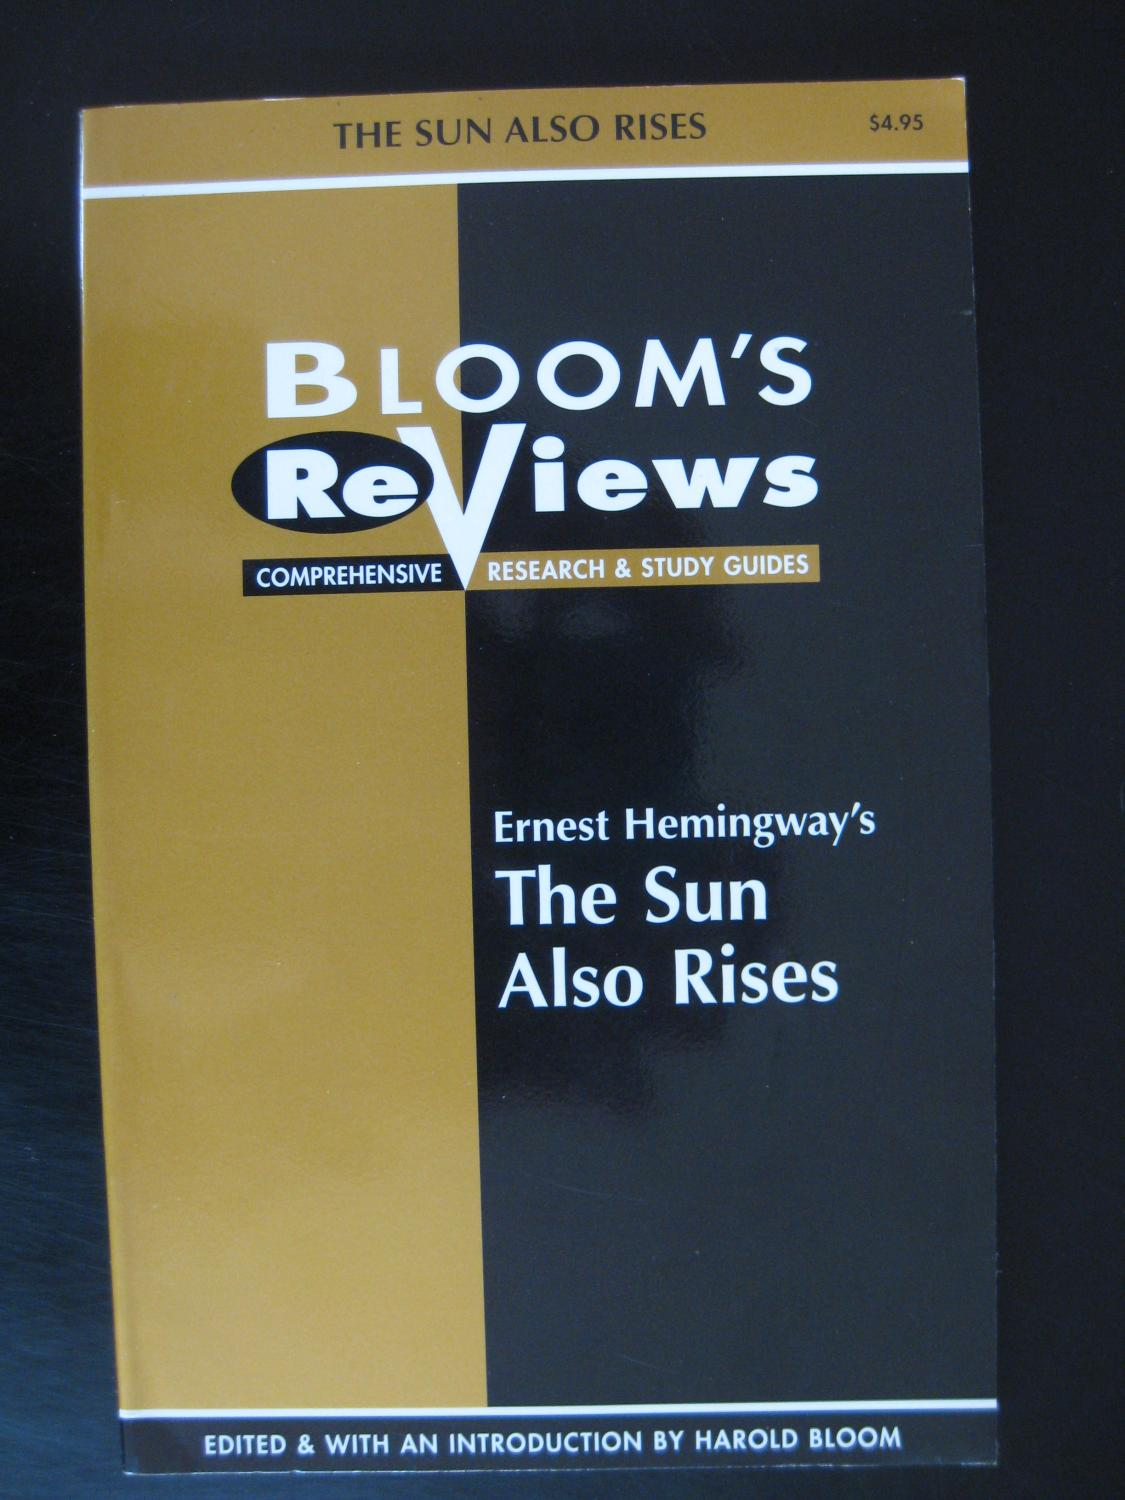 the sun also rises study guide Category: english/ paper: the sun also rises the remarkable thing about the book was its liberal use of dialogue and how hemingway used it to carry the reader through the book there was no plot in the book in the sense that there was no twists, intrigue, or goals for any of the characters and the dialogue was the only thing that moved the.